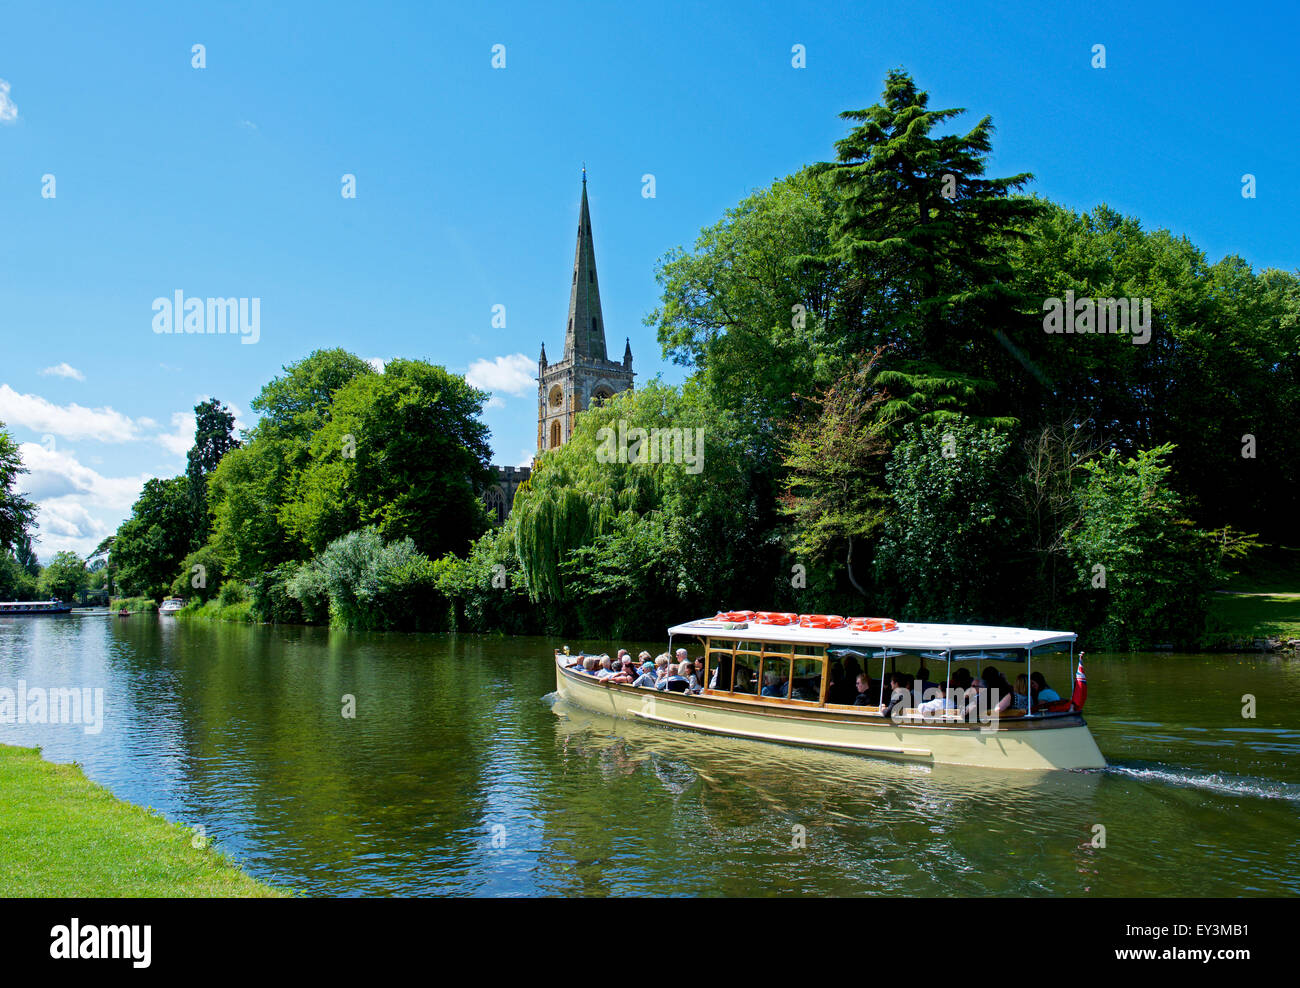 Passenger launch on the River Avon, and Holy Trinity Church, Stratford-upon-Avon, Warwickshire, England UK - Stock Image